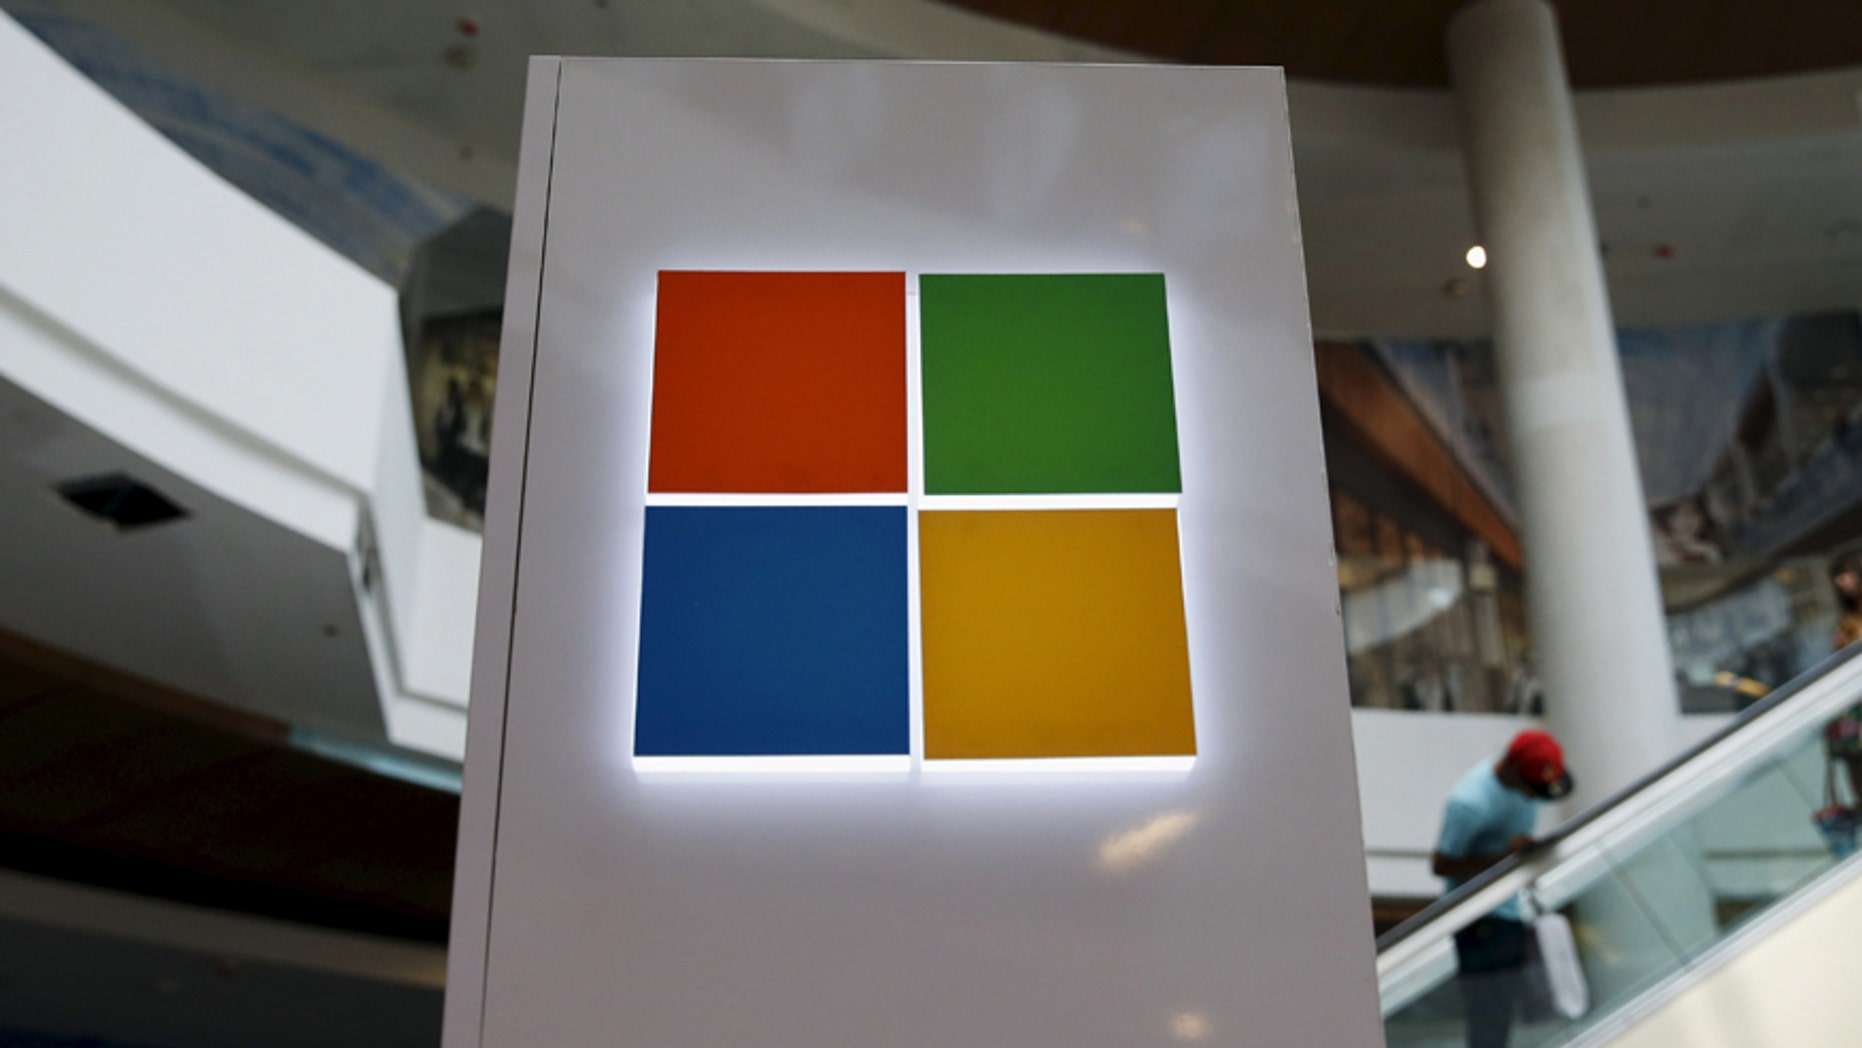 File photo - a Microsoft logo is seen at a pop-up site for the new Windows 10 operating system at Roosevelt Field in Garden City, New York July 29, 2015.